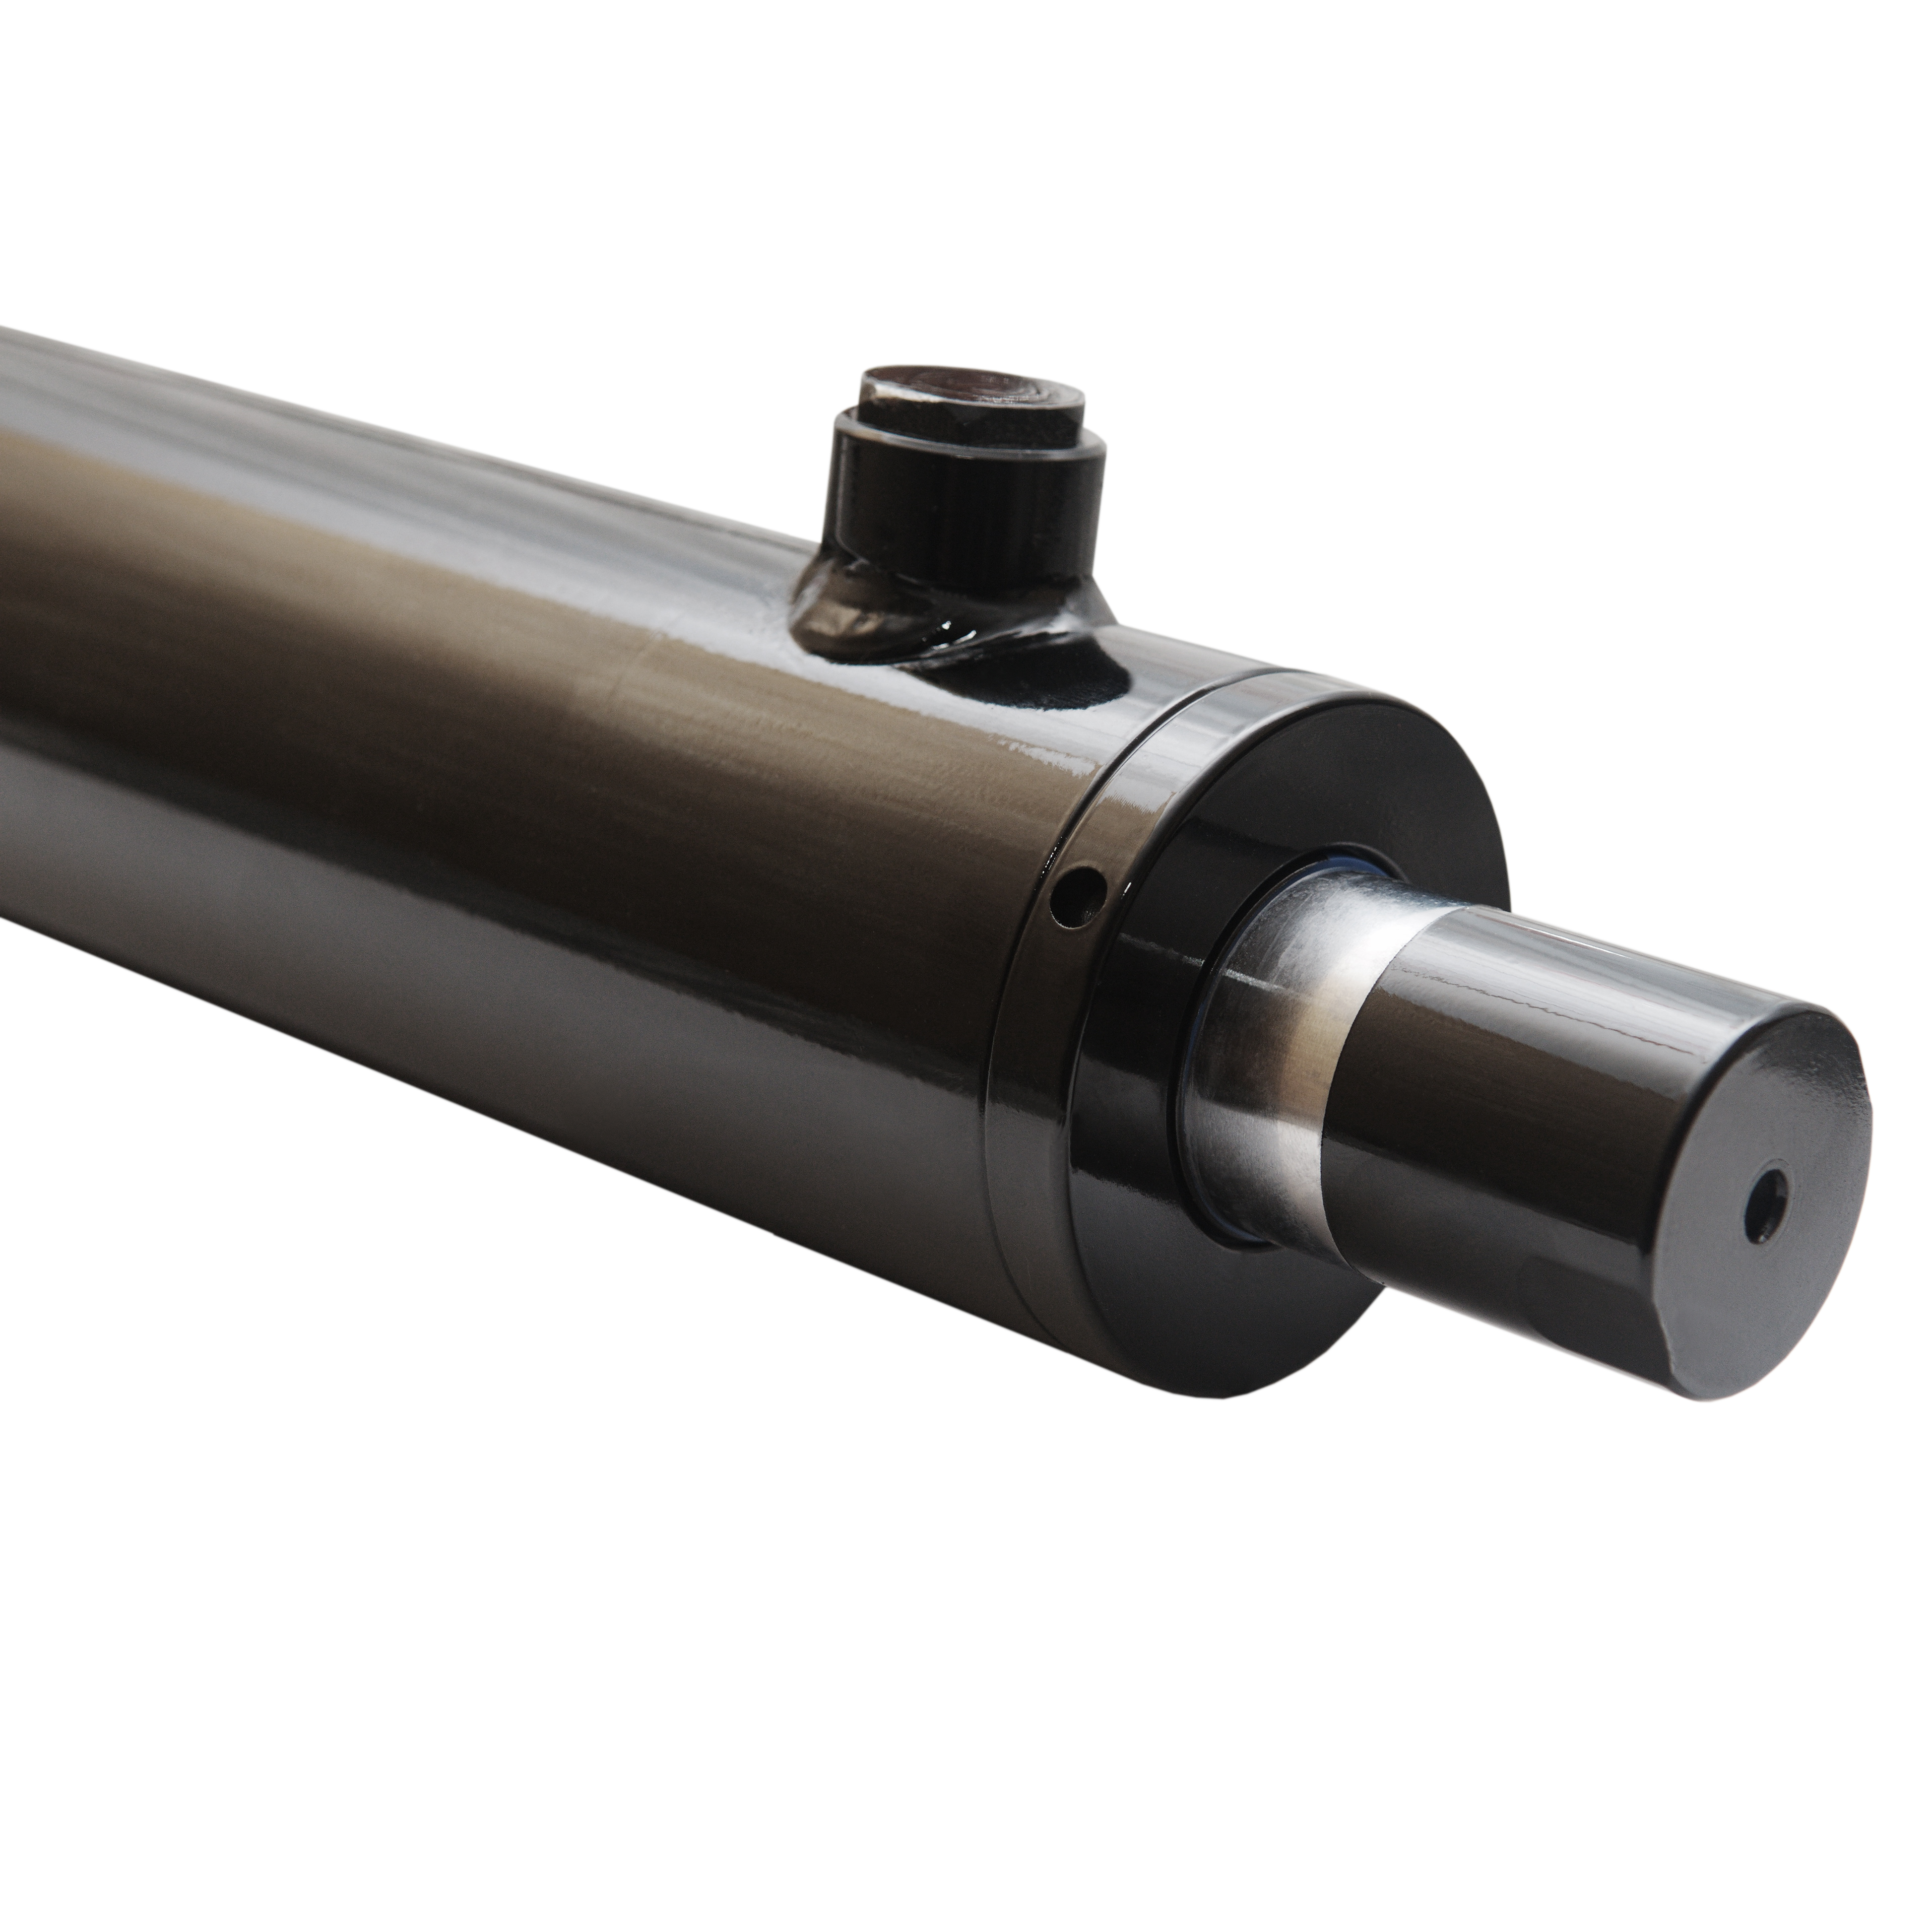 2.5 bore x 17 stroke hydraulic cylinder, welded universal double acting cylinder | Magister Hydraulics